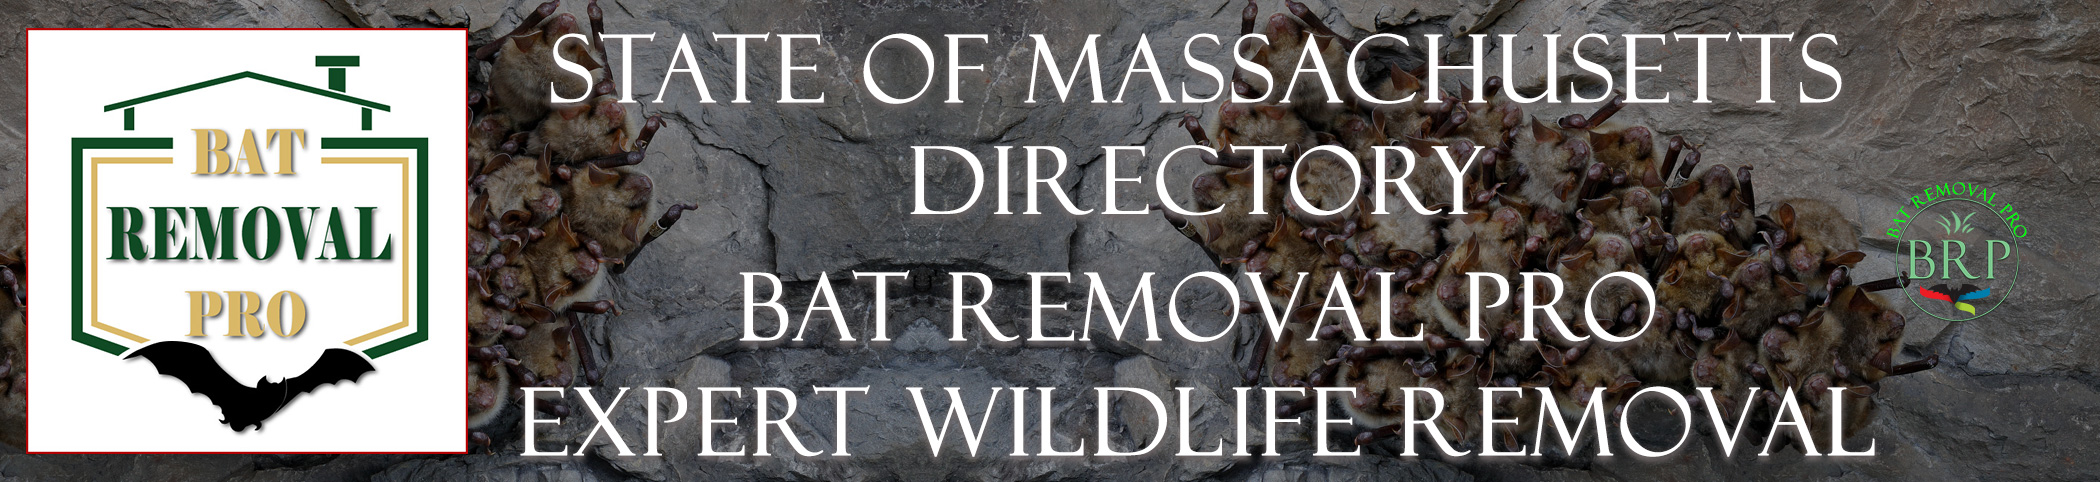 MASSACHUSETTS-bat-removal-at-bat-removal-pro-header-image